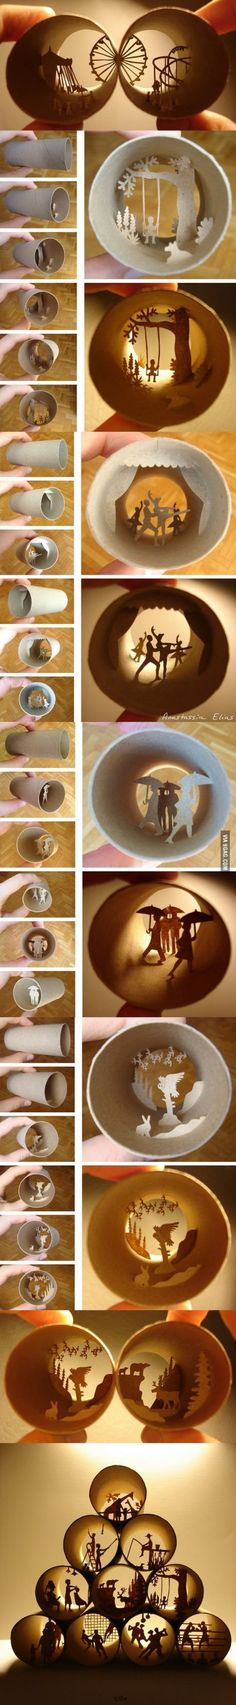 9GAG Toilet Paper Roll Art by Anastassia Elias